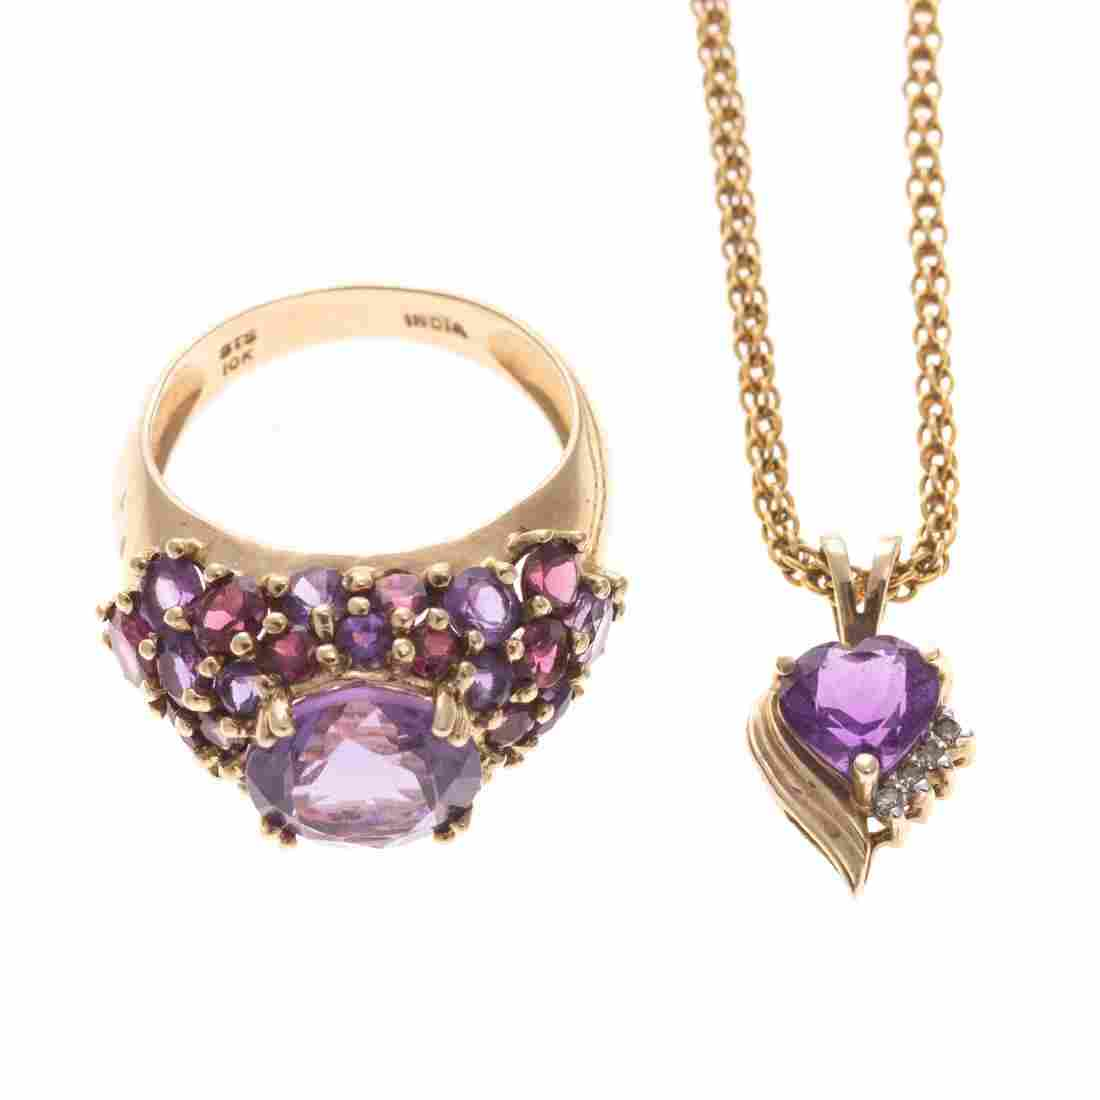 A Lady's Amethyst Ring and Pendant in Gold